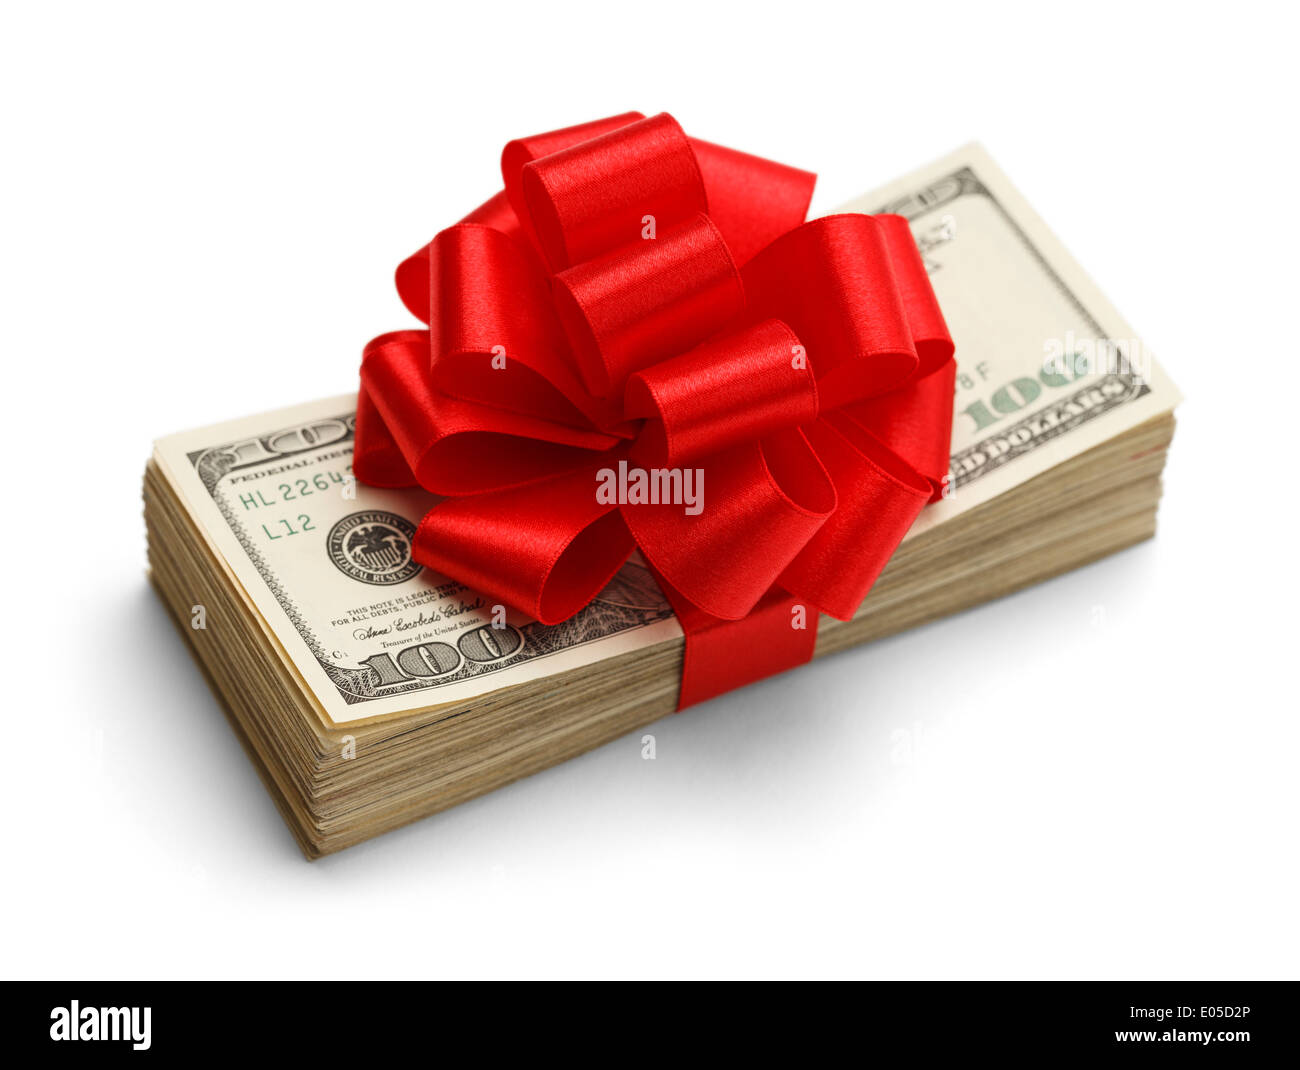 Christmas Bonus Gift Present Stack of Cash Money Hundred Dollar US Bills With Red Bow Isolated on White Background. - Stock Image